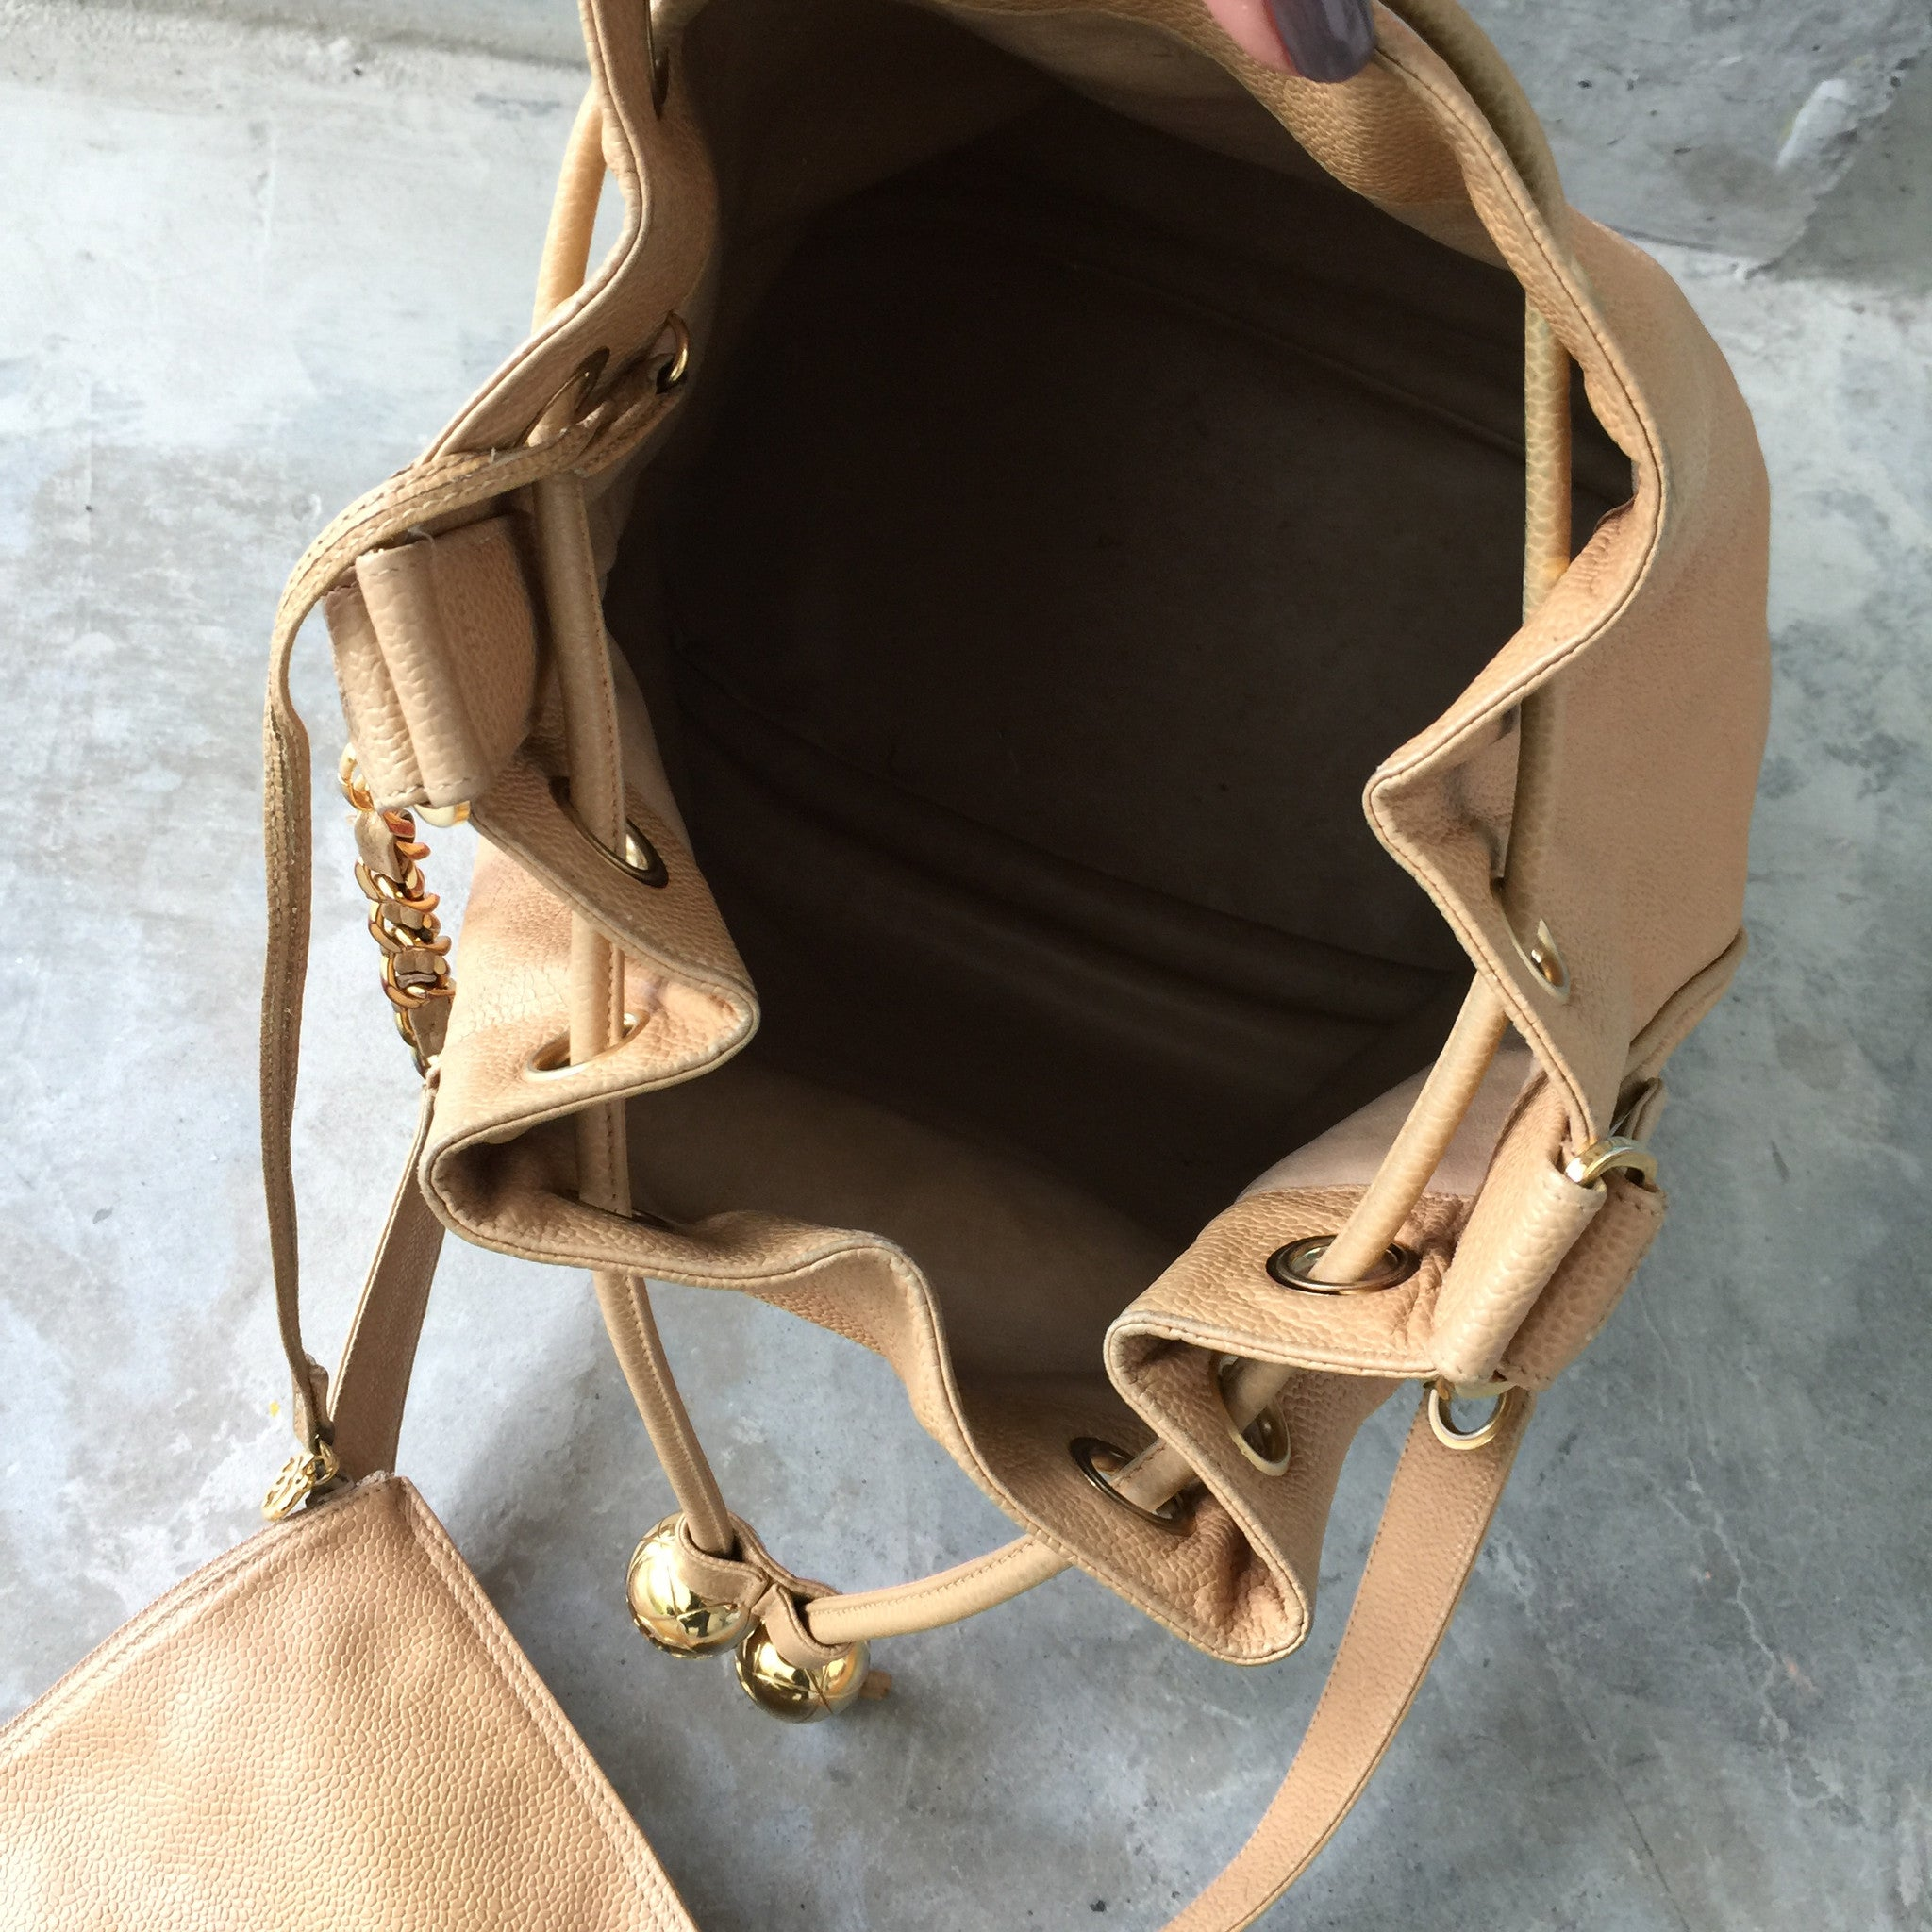 Authentic CHANEL Vintage Beige Caviar Bucket Shoulder Tote